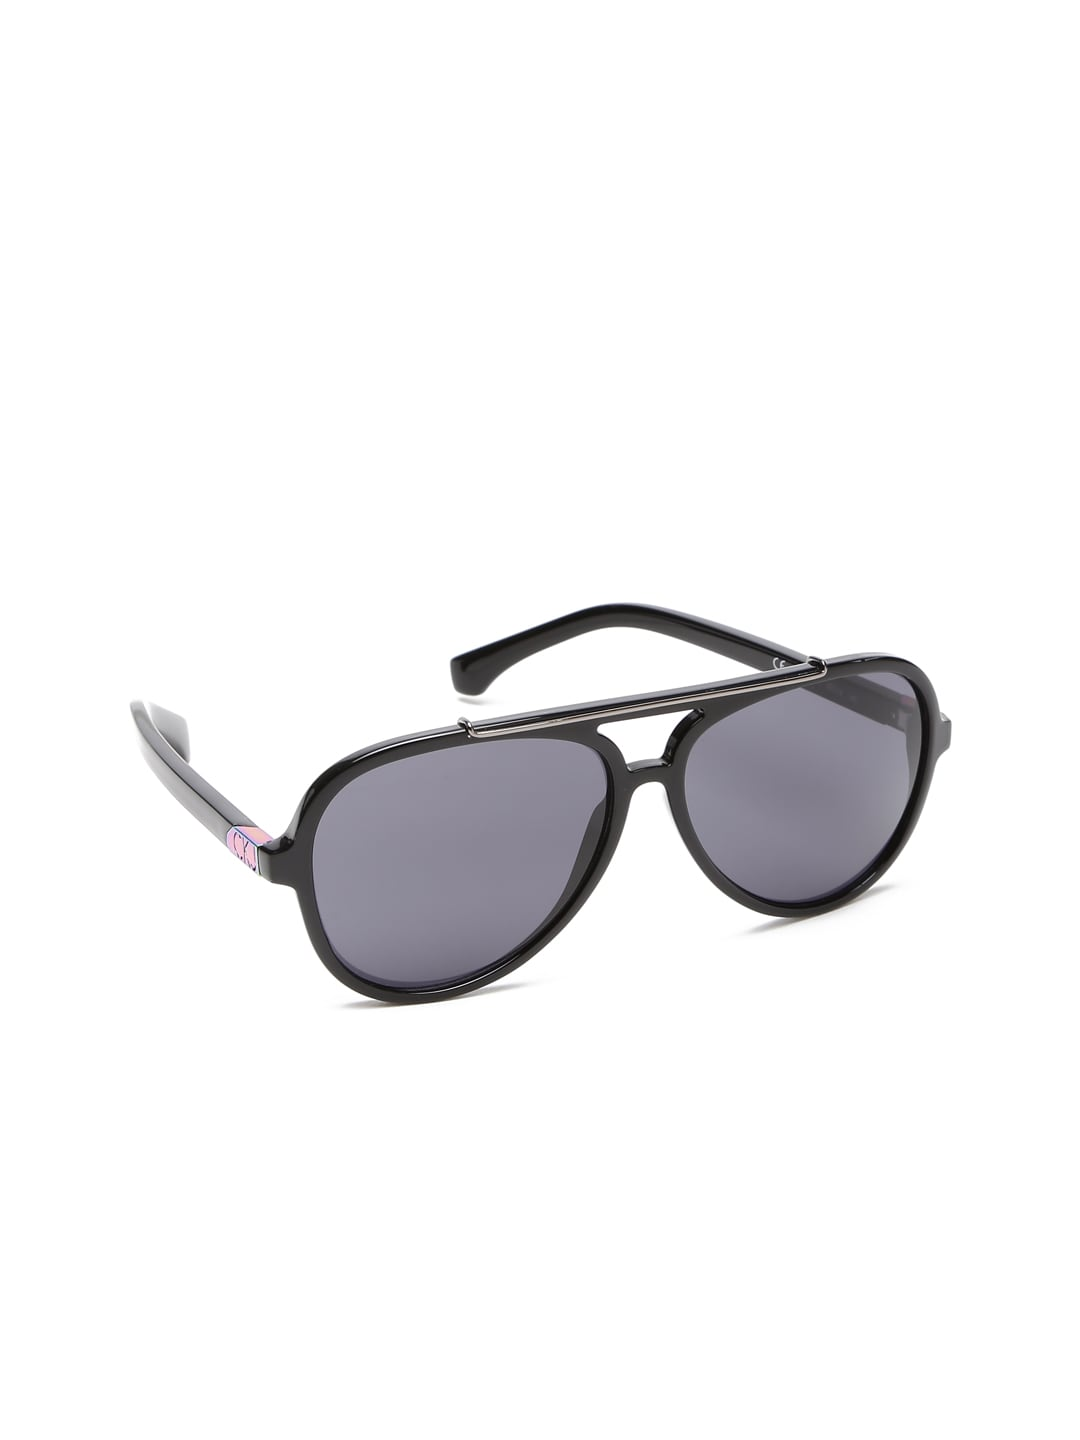 4fc52a23172 Tommy Sun Sunglasses Care Watches S - Buy Tommy Sun Sunglasses Care Watches  S online in India